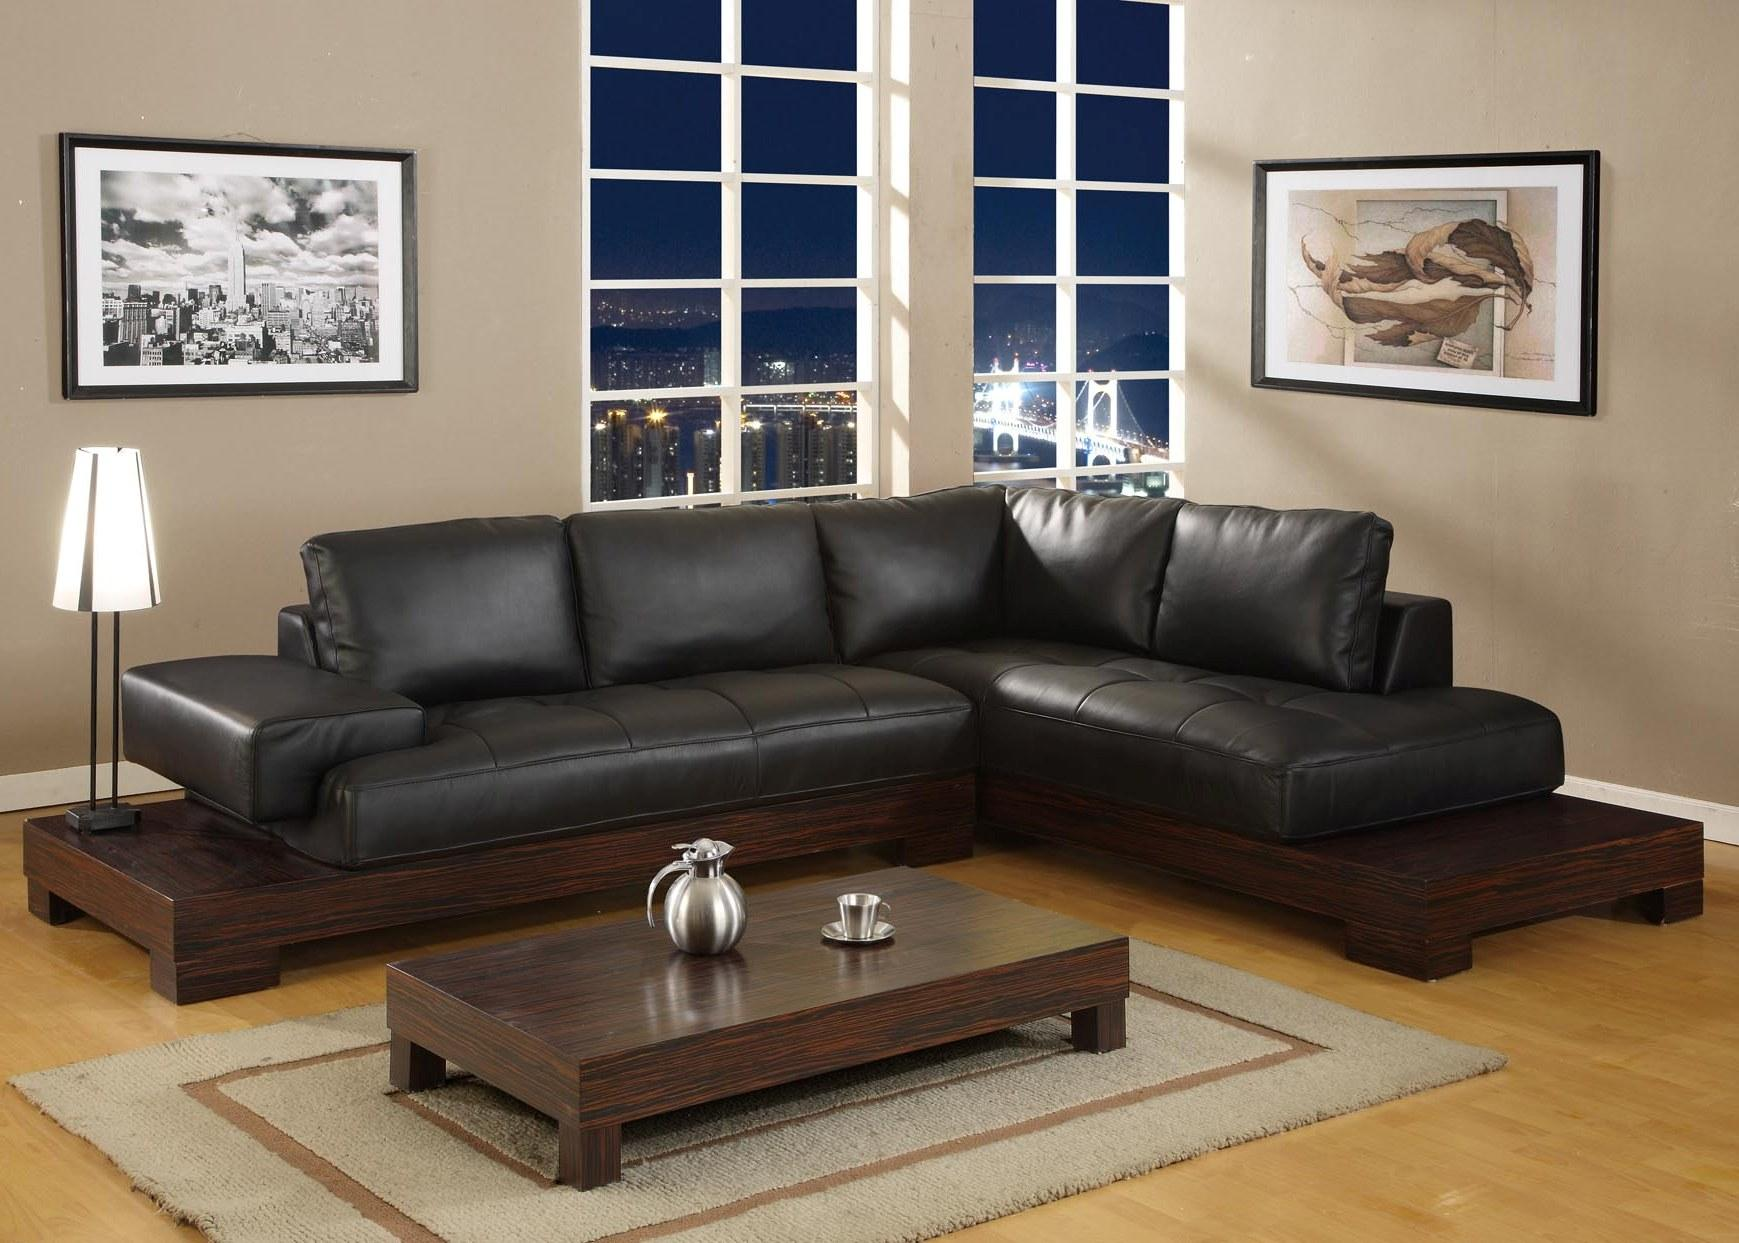 black furniture living room ideas | homesfeed